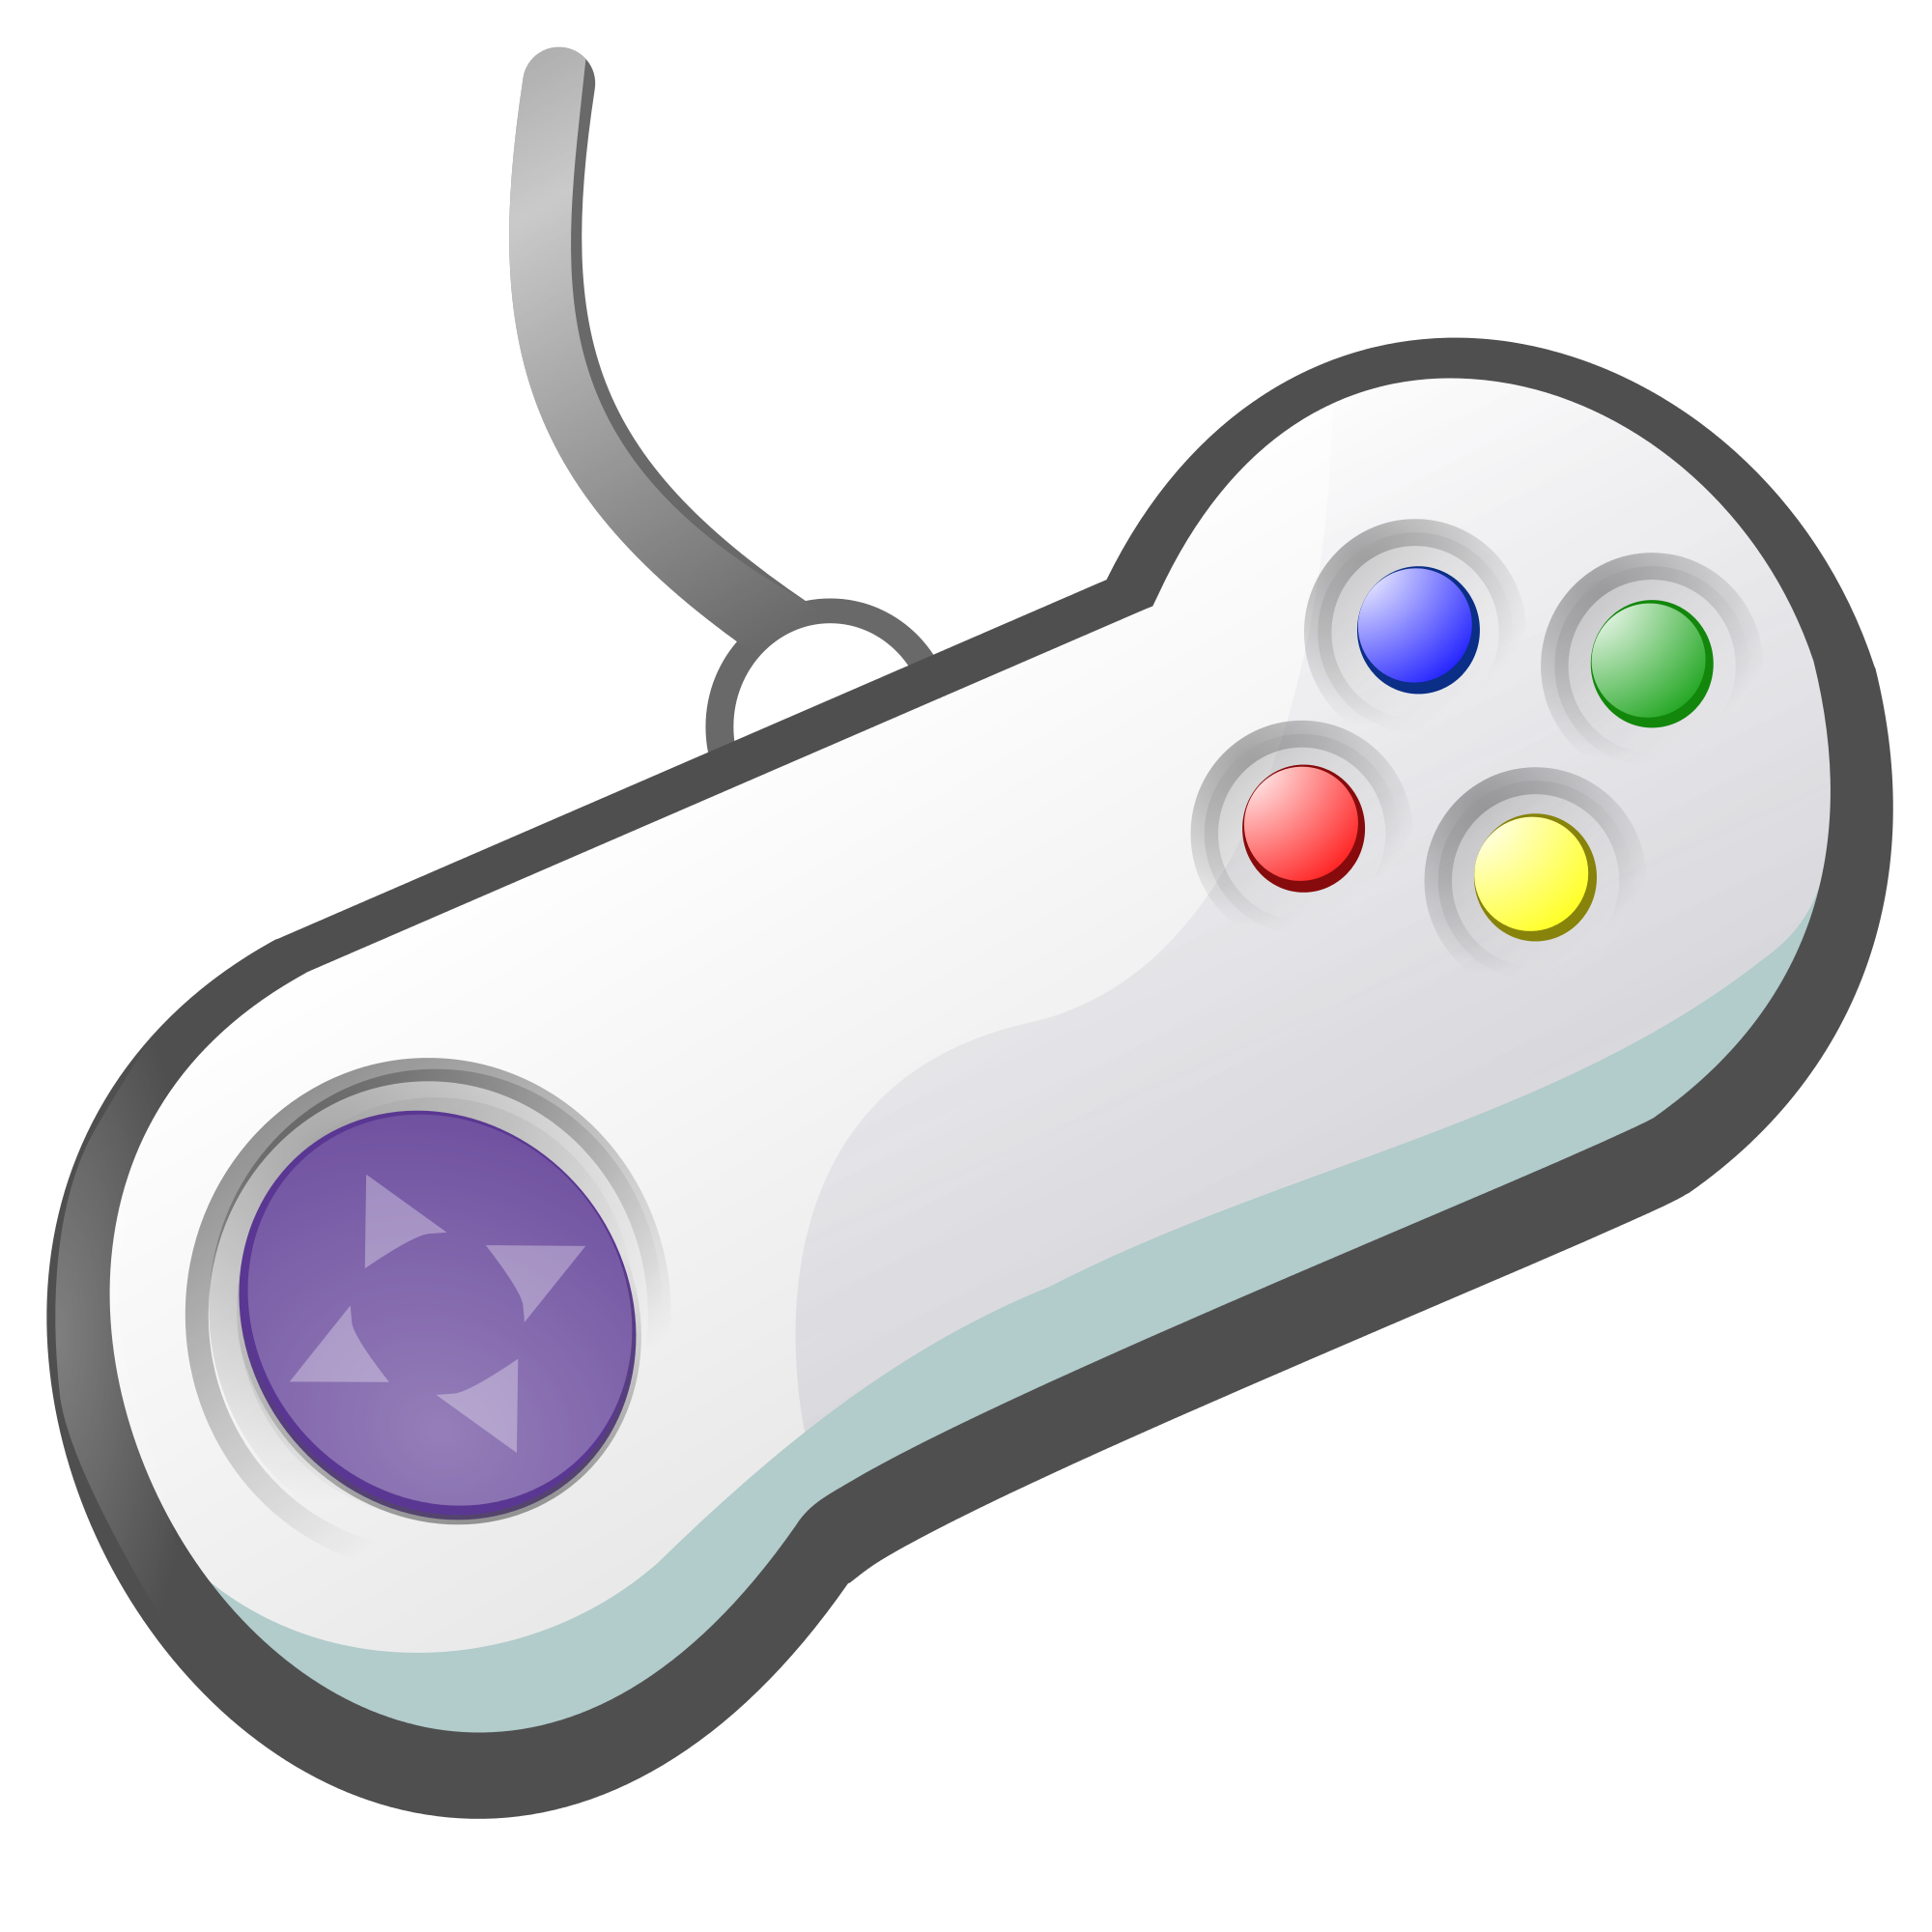 Game clipart game night. Controller transparent background free